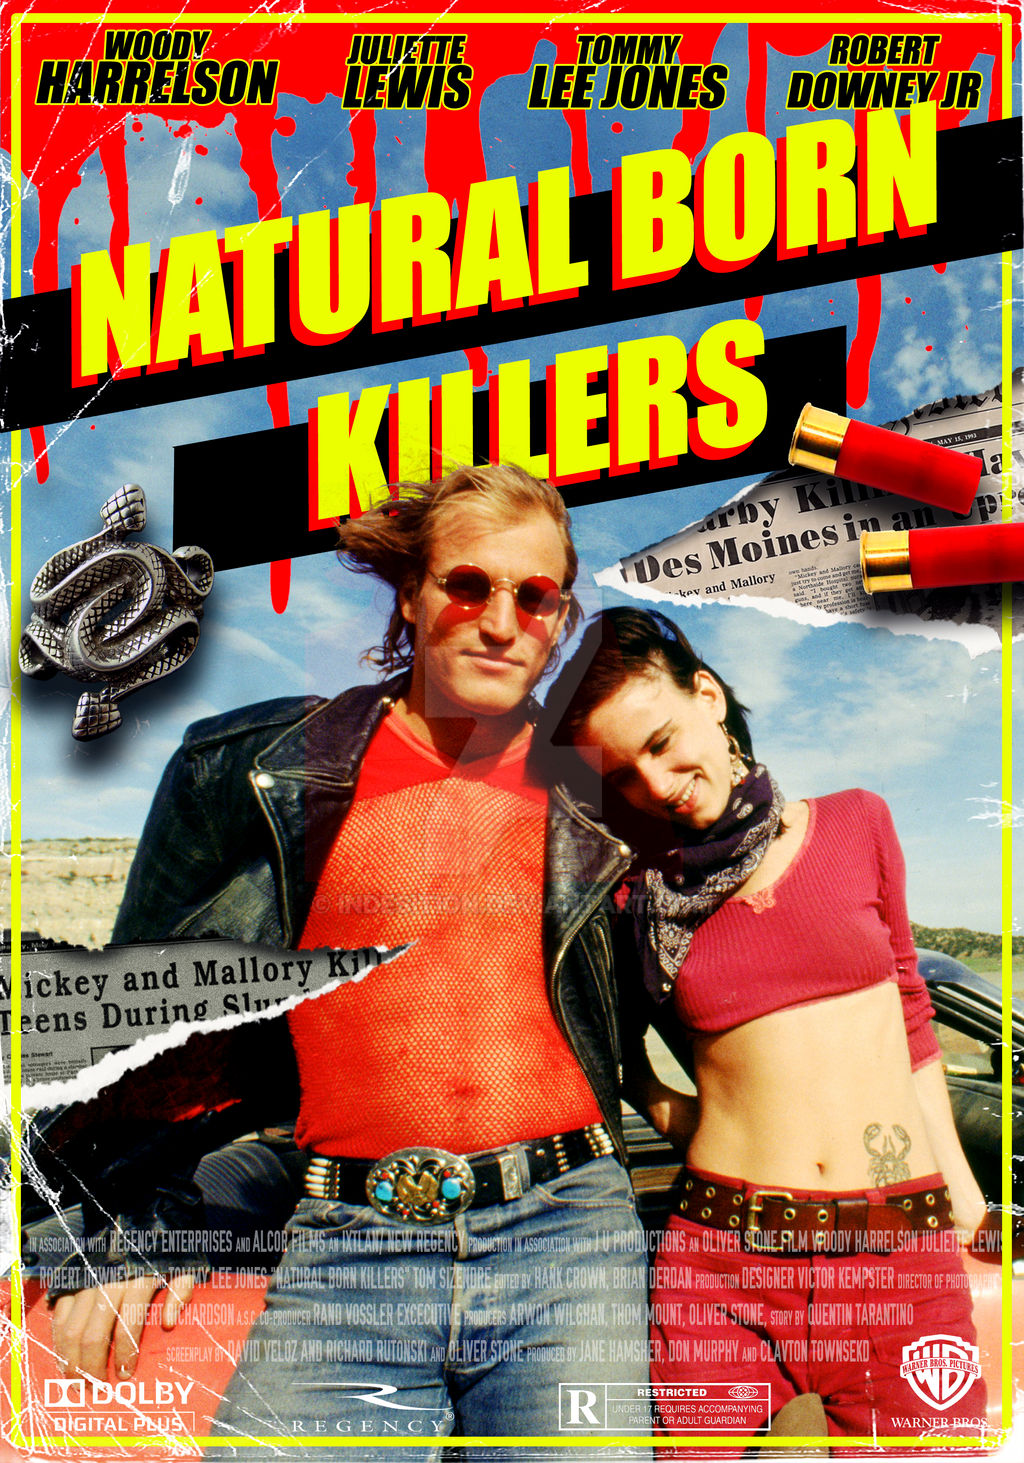 Natural Born Killers - Poster by indesition on DeviantArt